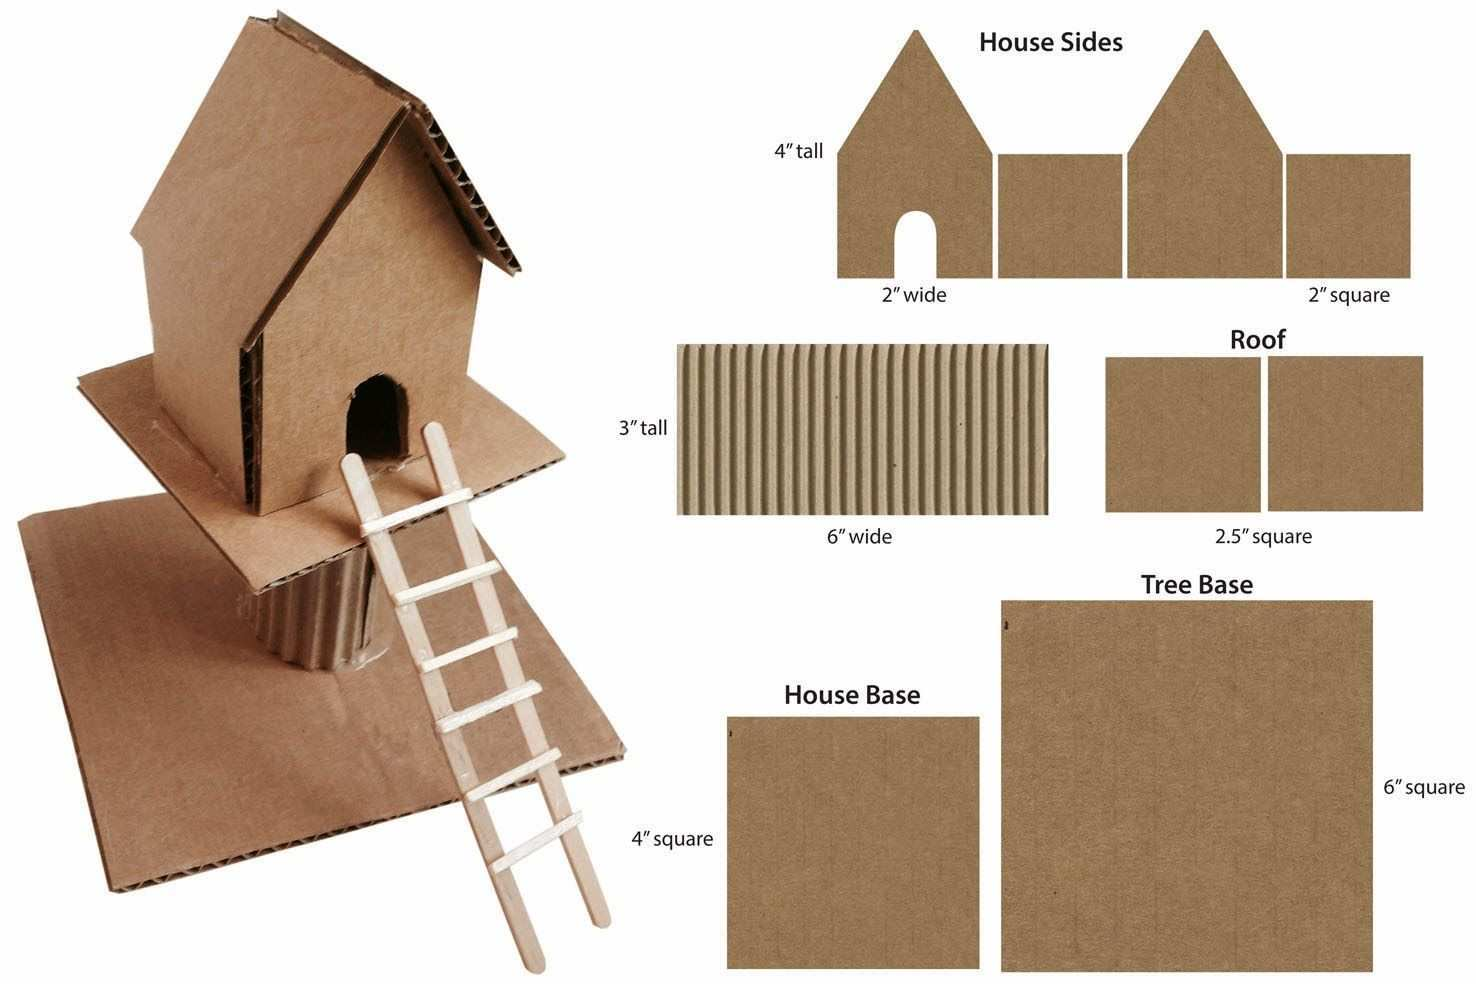 Cardboard Art Projects Google Search Childrens Art Projects Cardboard Art Cardboard Crafts